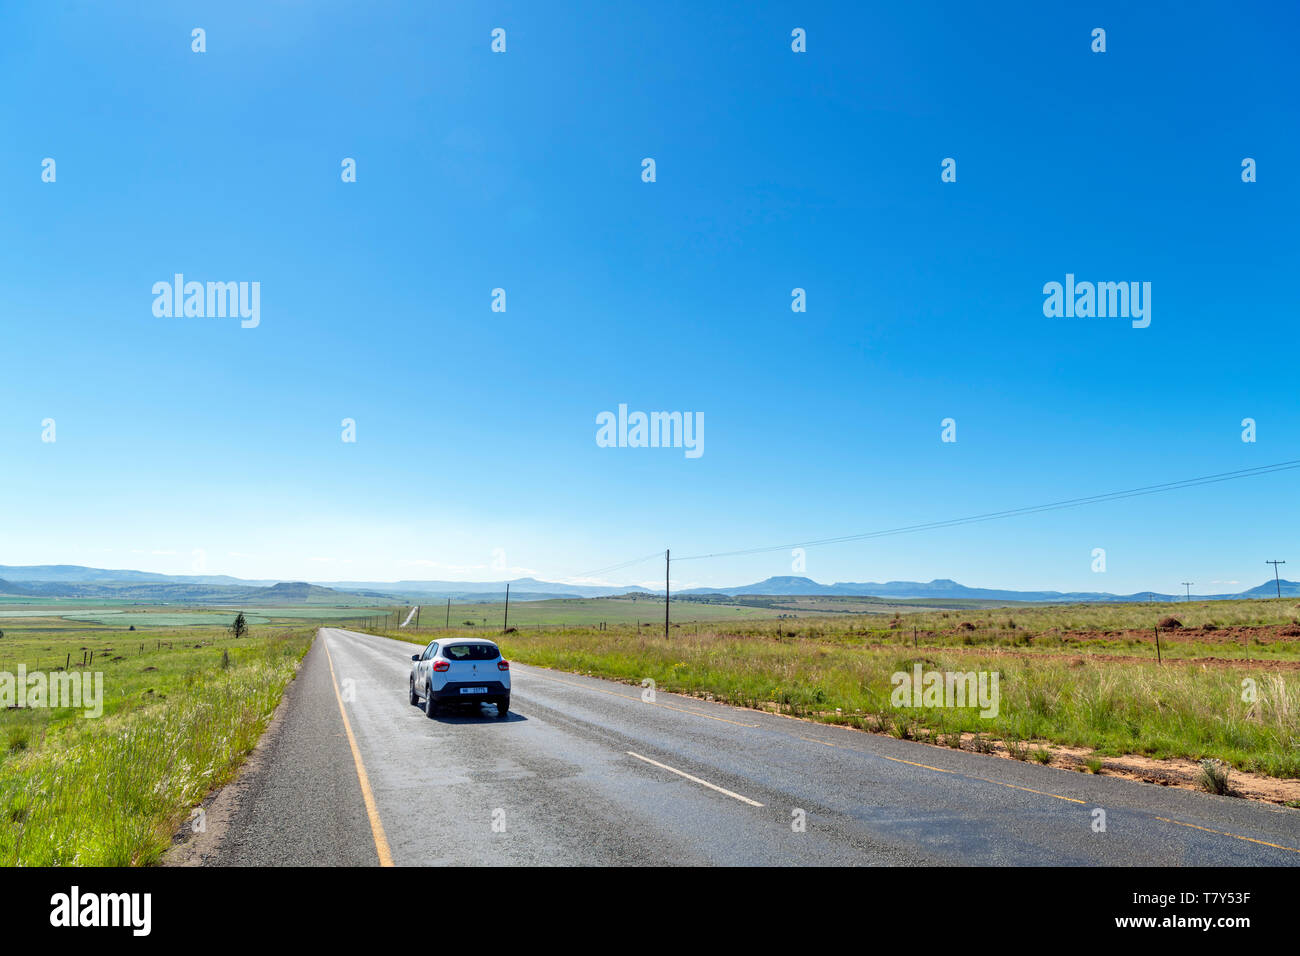 Car driving on the R34 highway near Newcastle, KwaZulu-Natal, South Africa - Stock Image